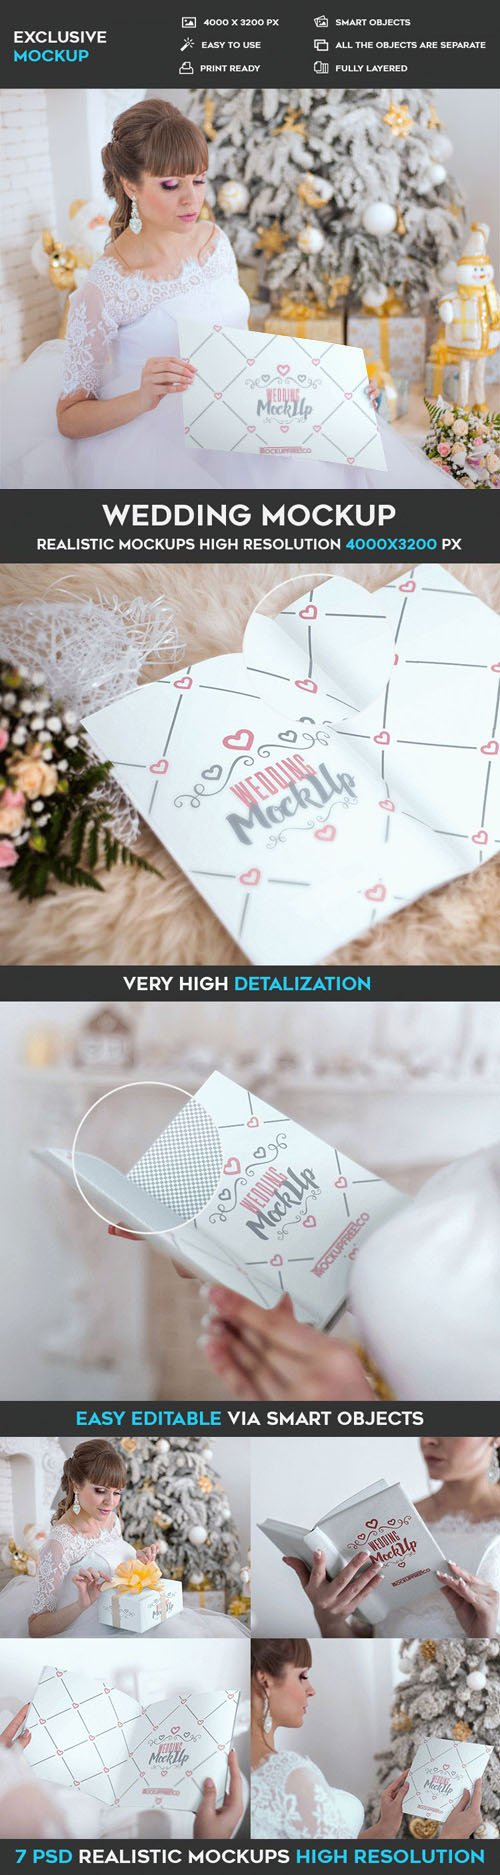 Wedding Invitation, Poster and Book - 7 PSD Mockups